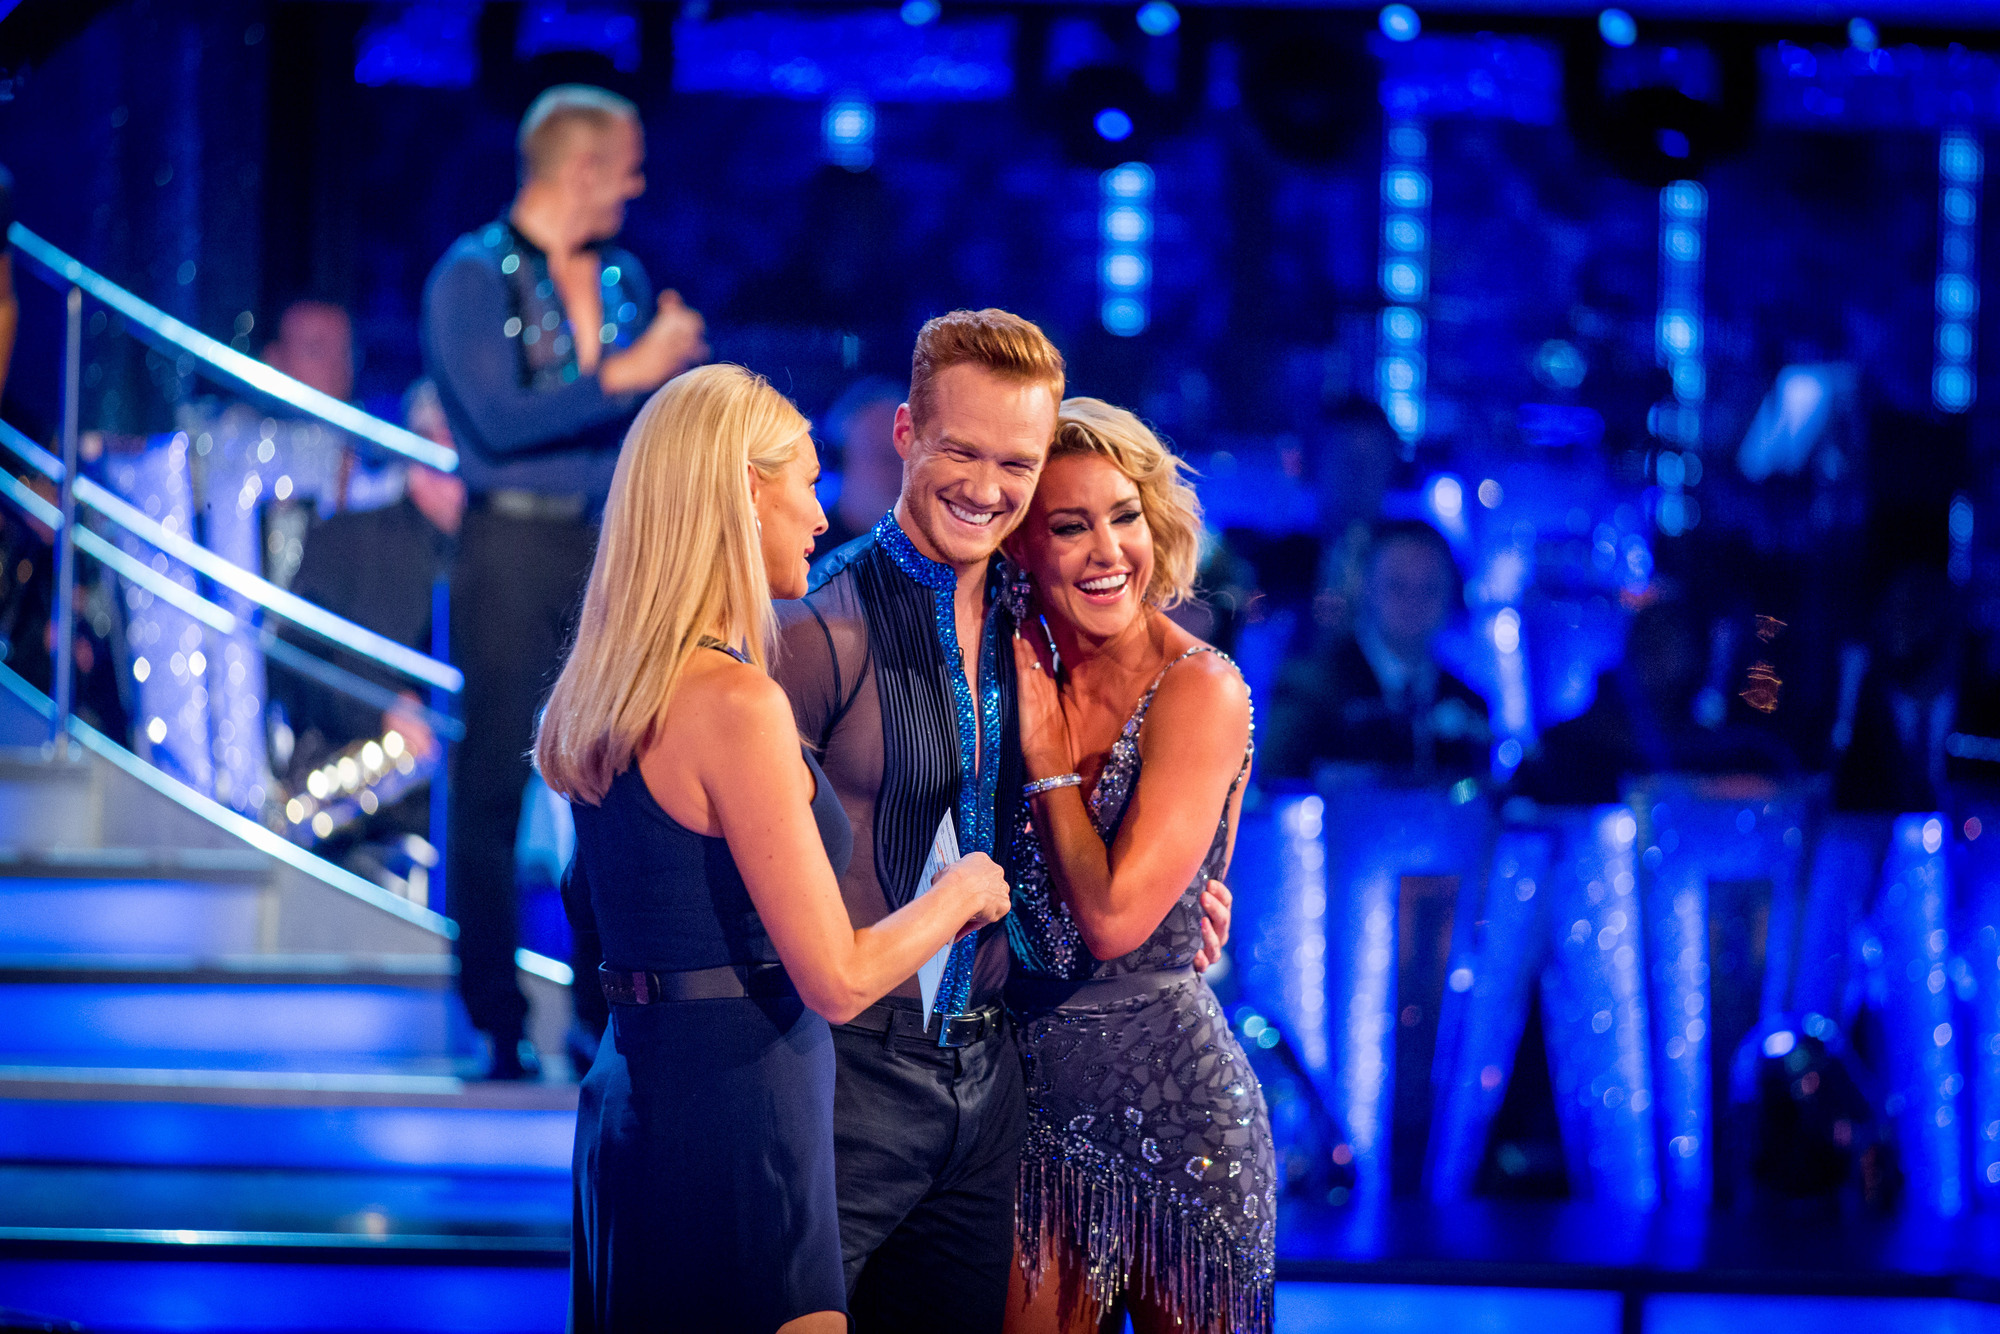 Strictly Come Dancing: Everyone is swooning for Greg Rutherford, and no one's surprised over Laura Whitmore's pairing